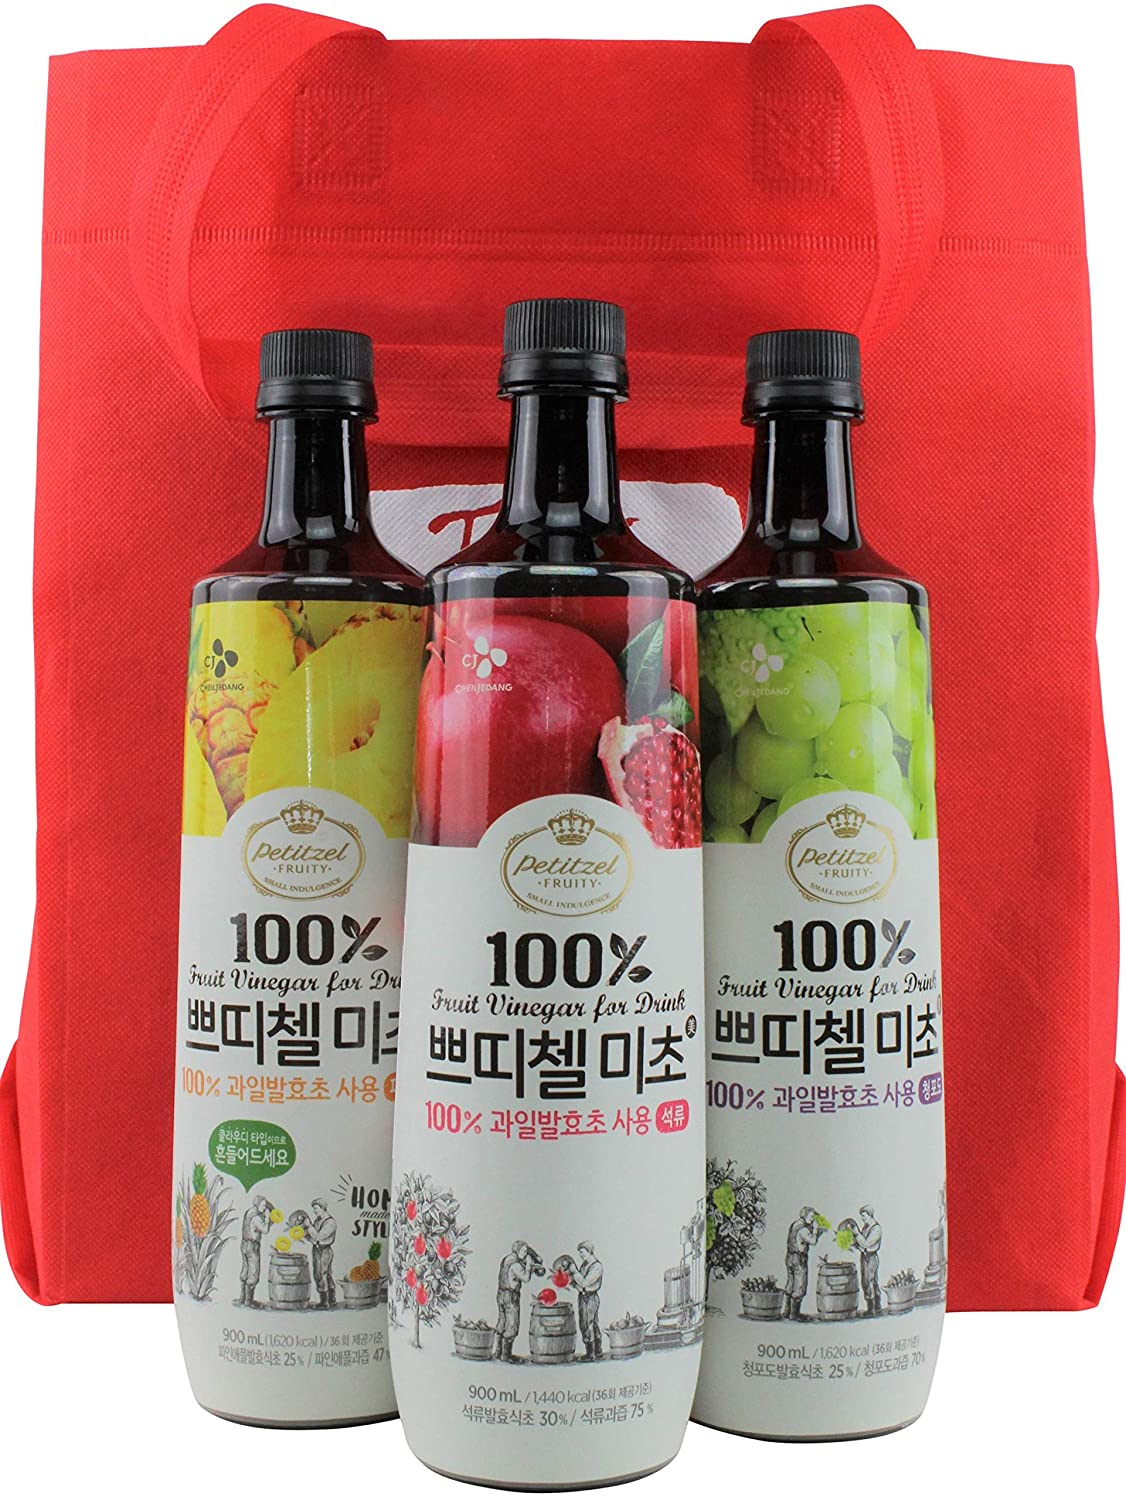 Korean beverages you can buy from Amazon other than tea and soju